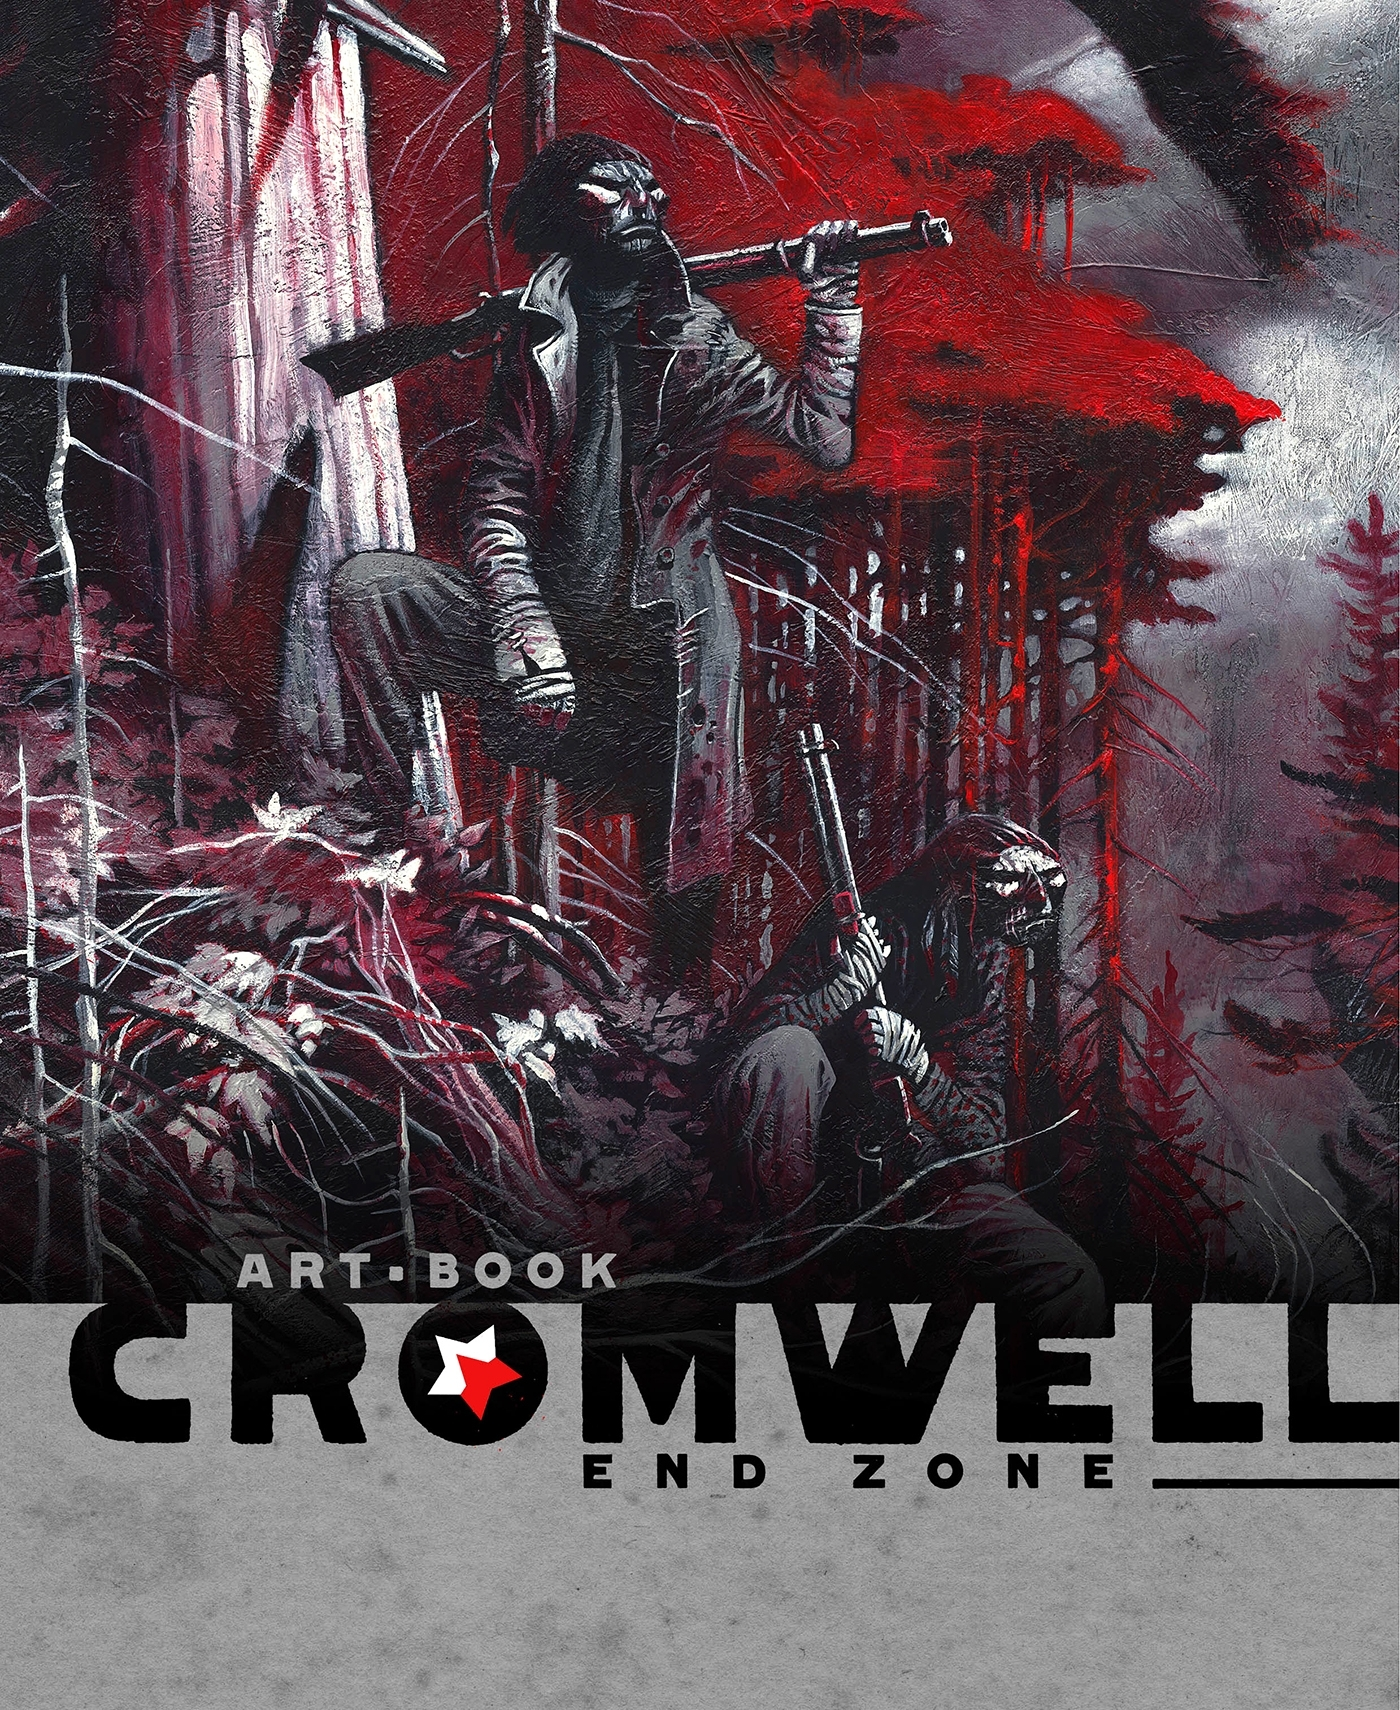 END ZONE - ARTBOOK - THE ART OF CROMWELL